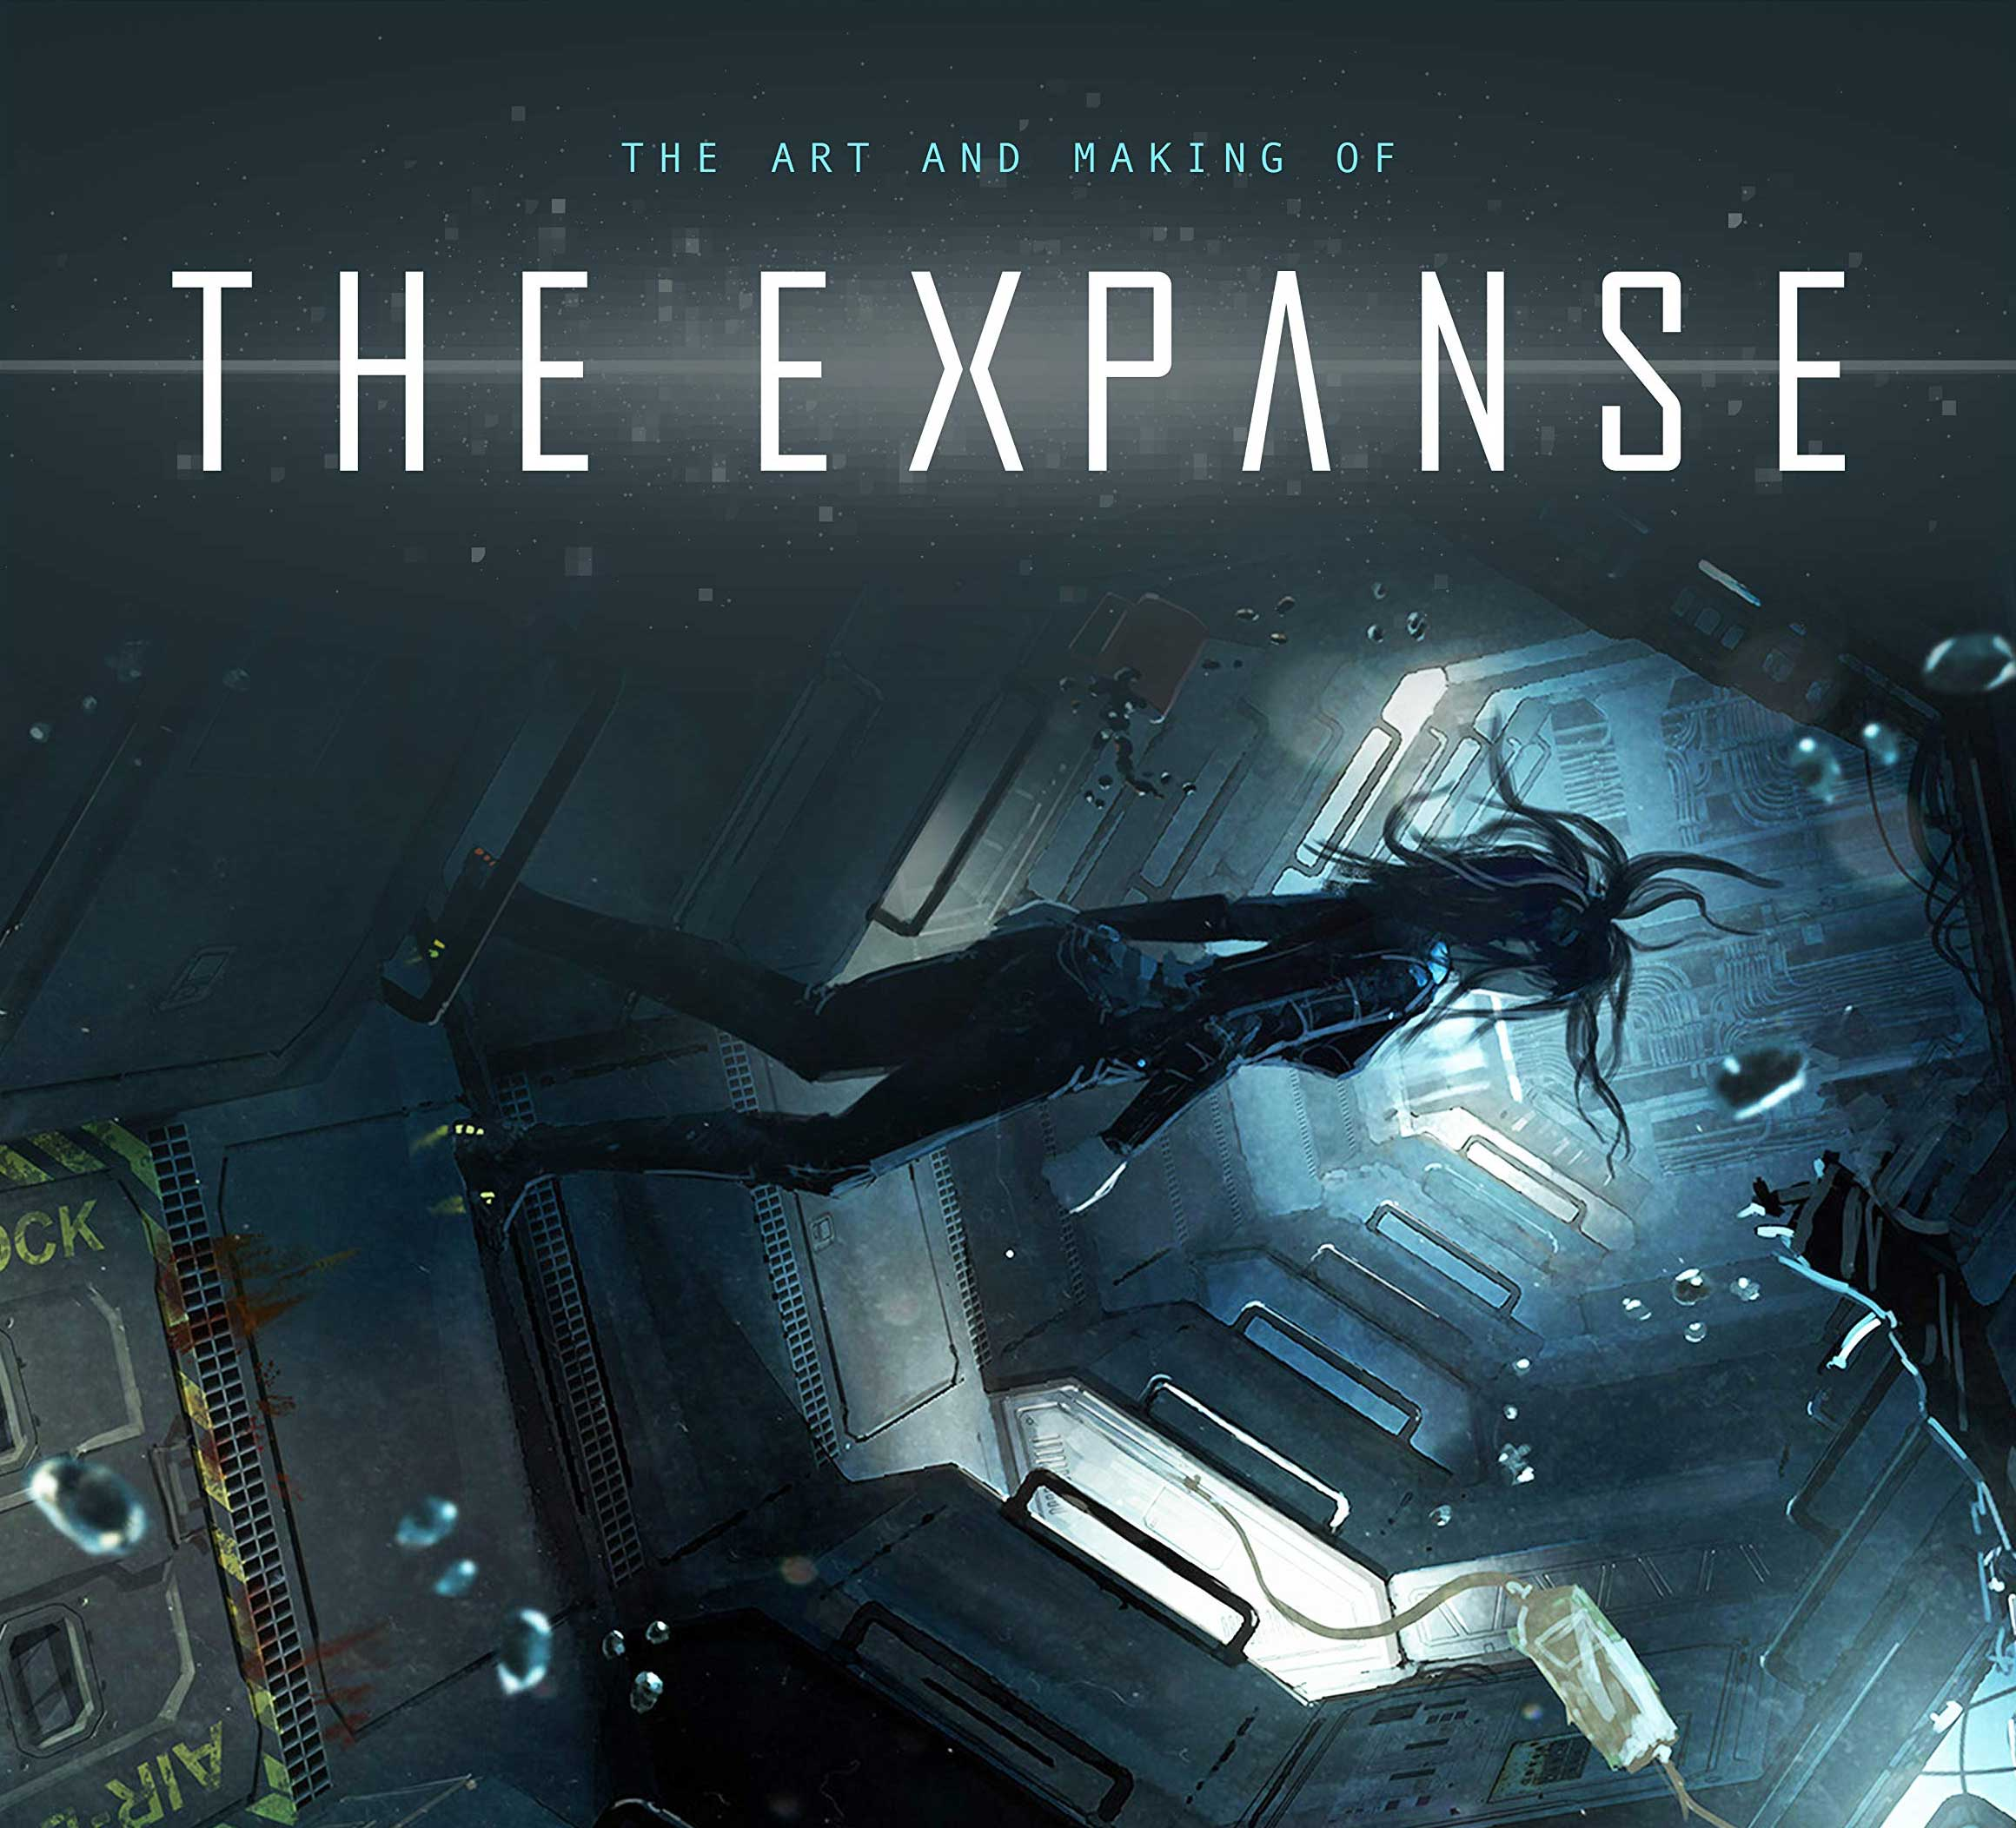 The Art and Making of The Expanse Book Review